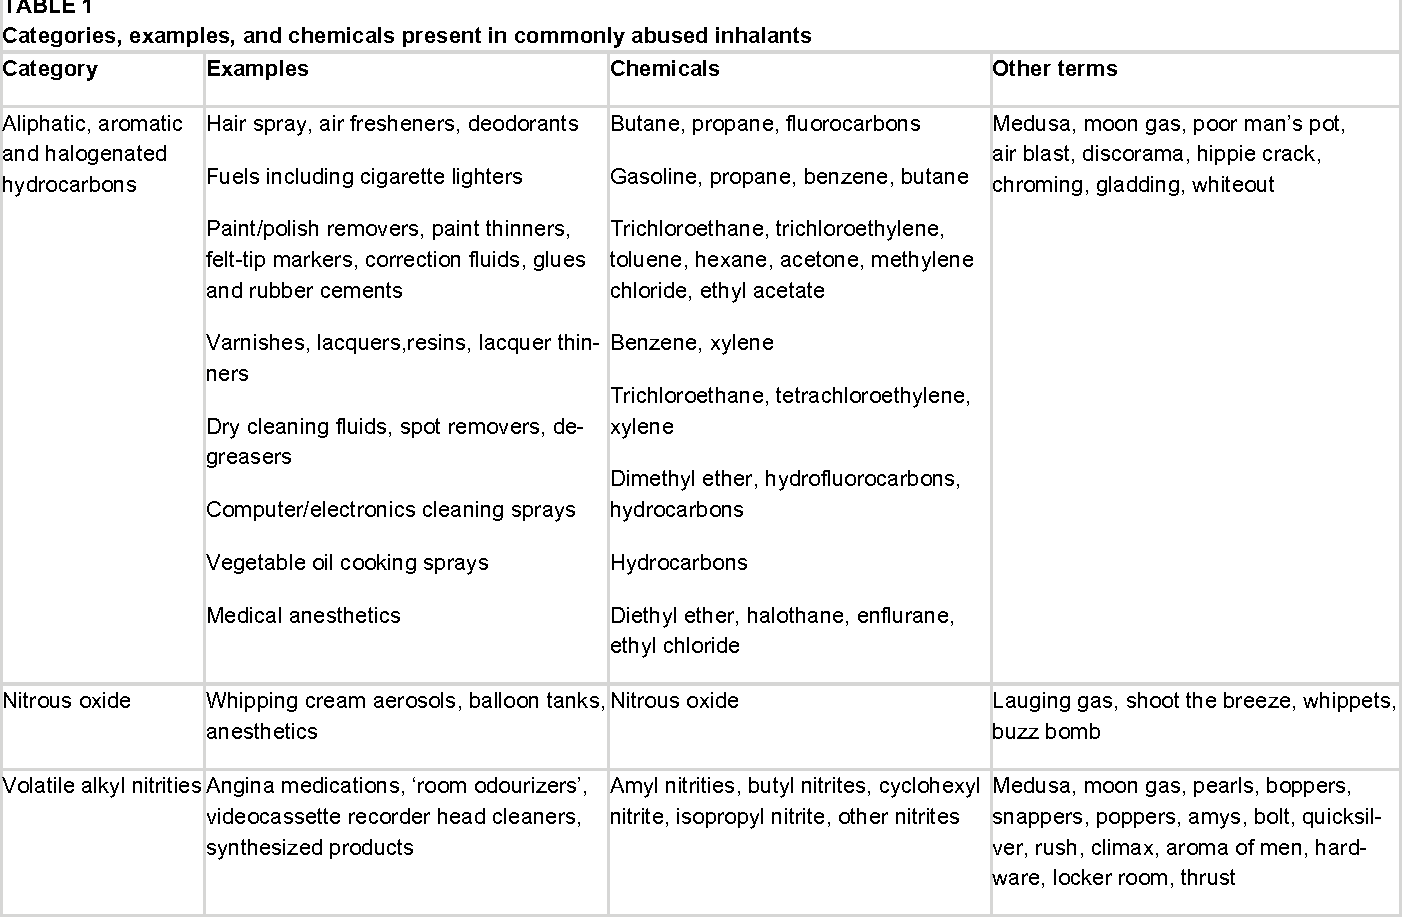 Table 1 from Position statement Inhalant abuse - Semantic